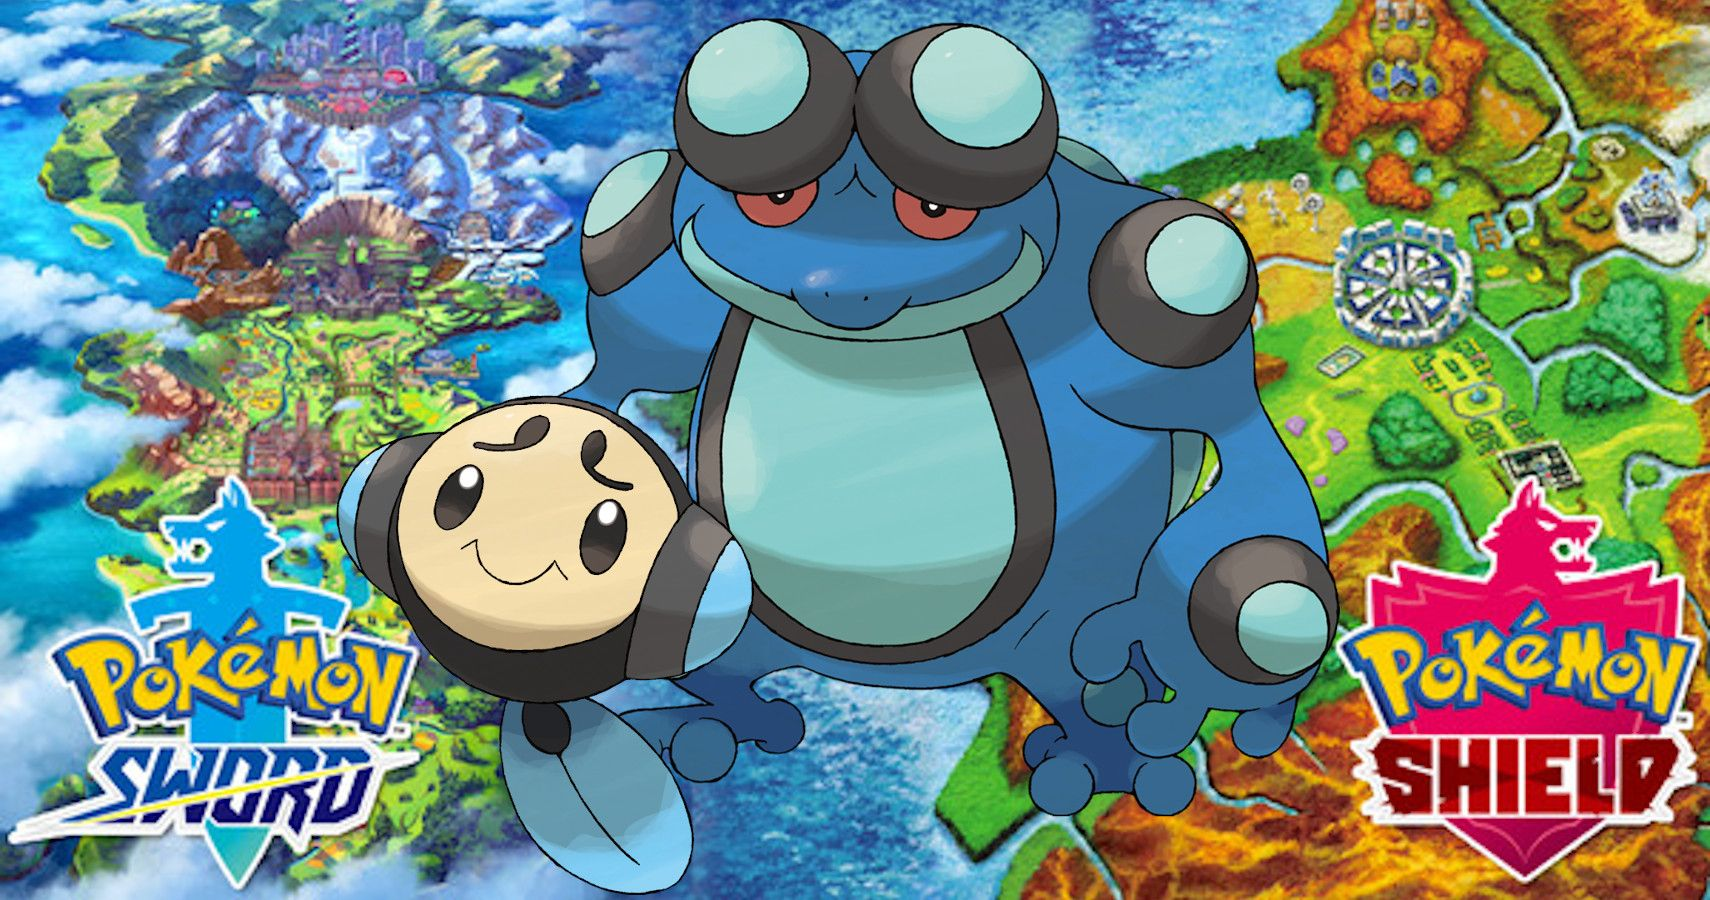 Pokemon Sword Shield How To Find Evolve Tympole Into Seismitoad Read on for information on its evolutions, abilities, type advantages, and more. evolve tympole into seismitoad